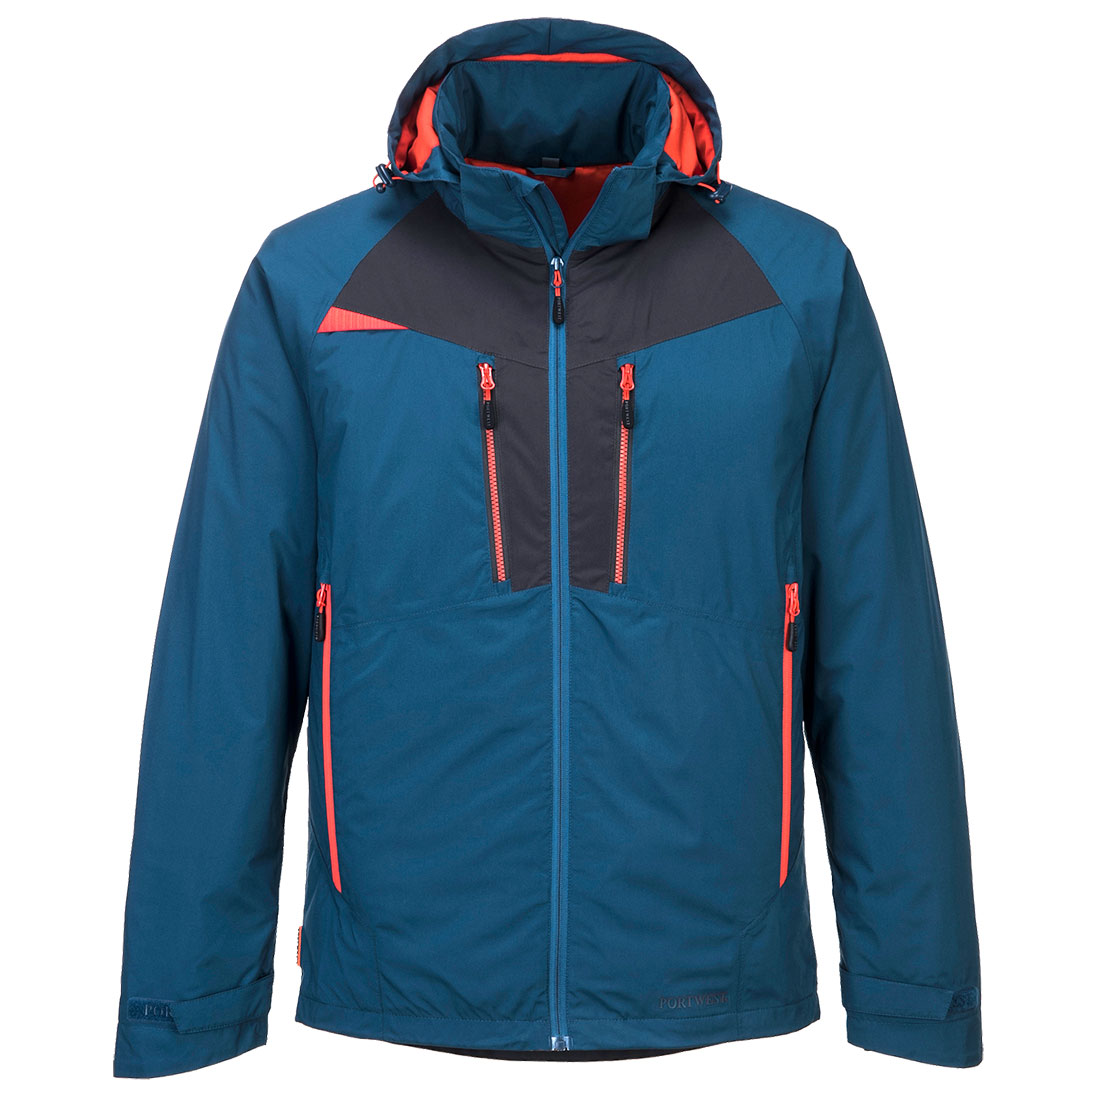 DX4 Winter Jacket Metro Blue XL